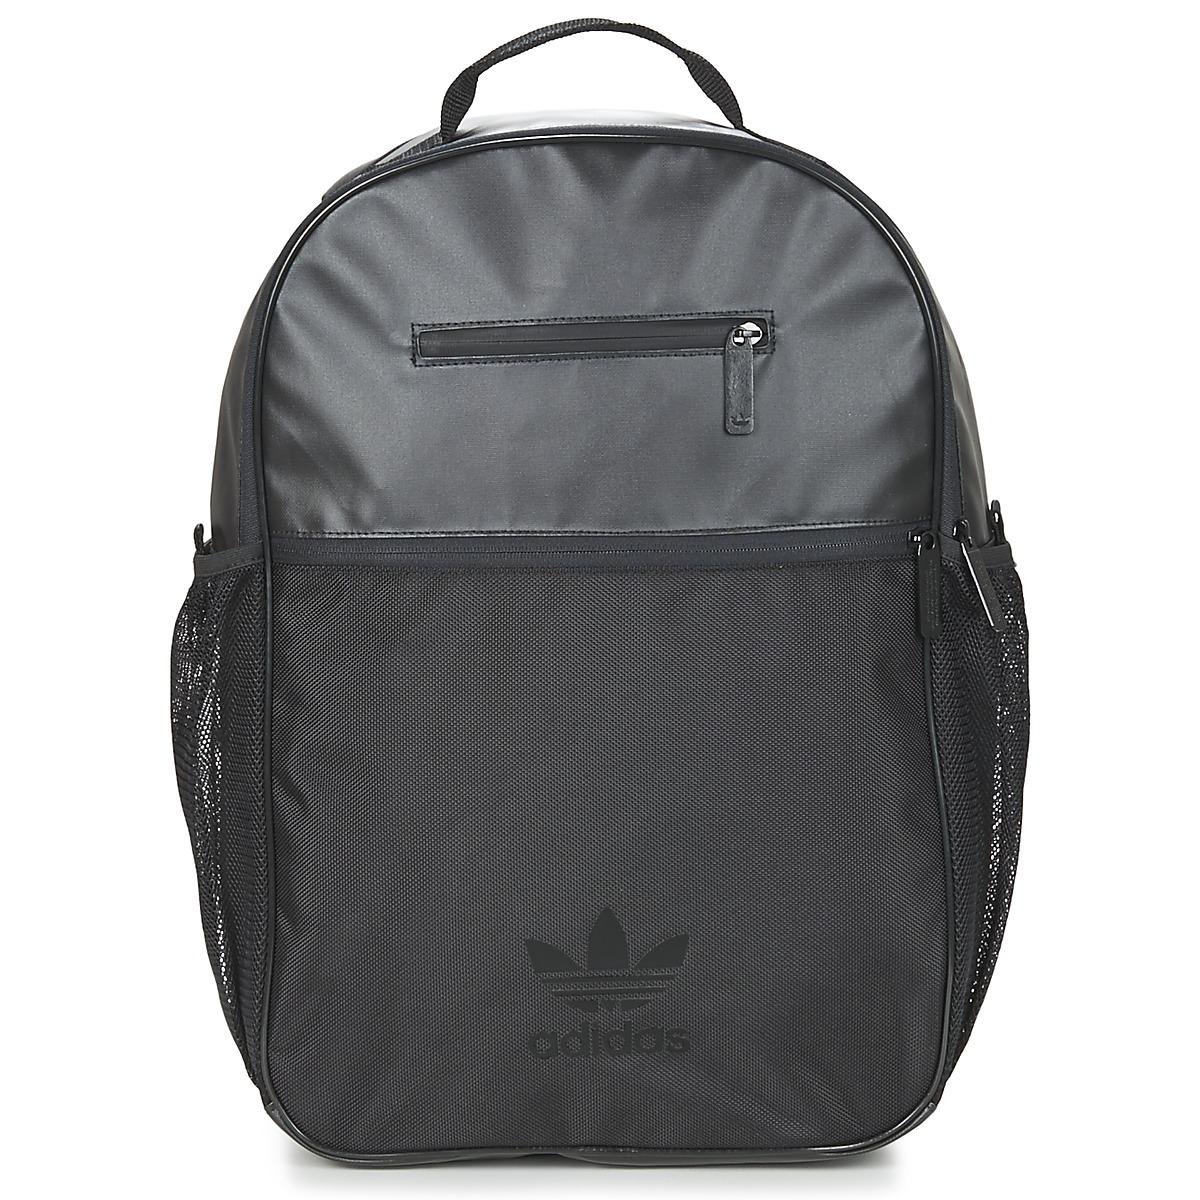 edc4cca27548 adidas Bp Ess Sport Men s Backpack In Black in Black for Men - Lyst